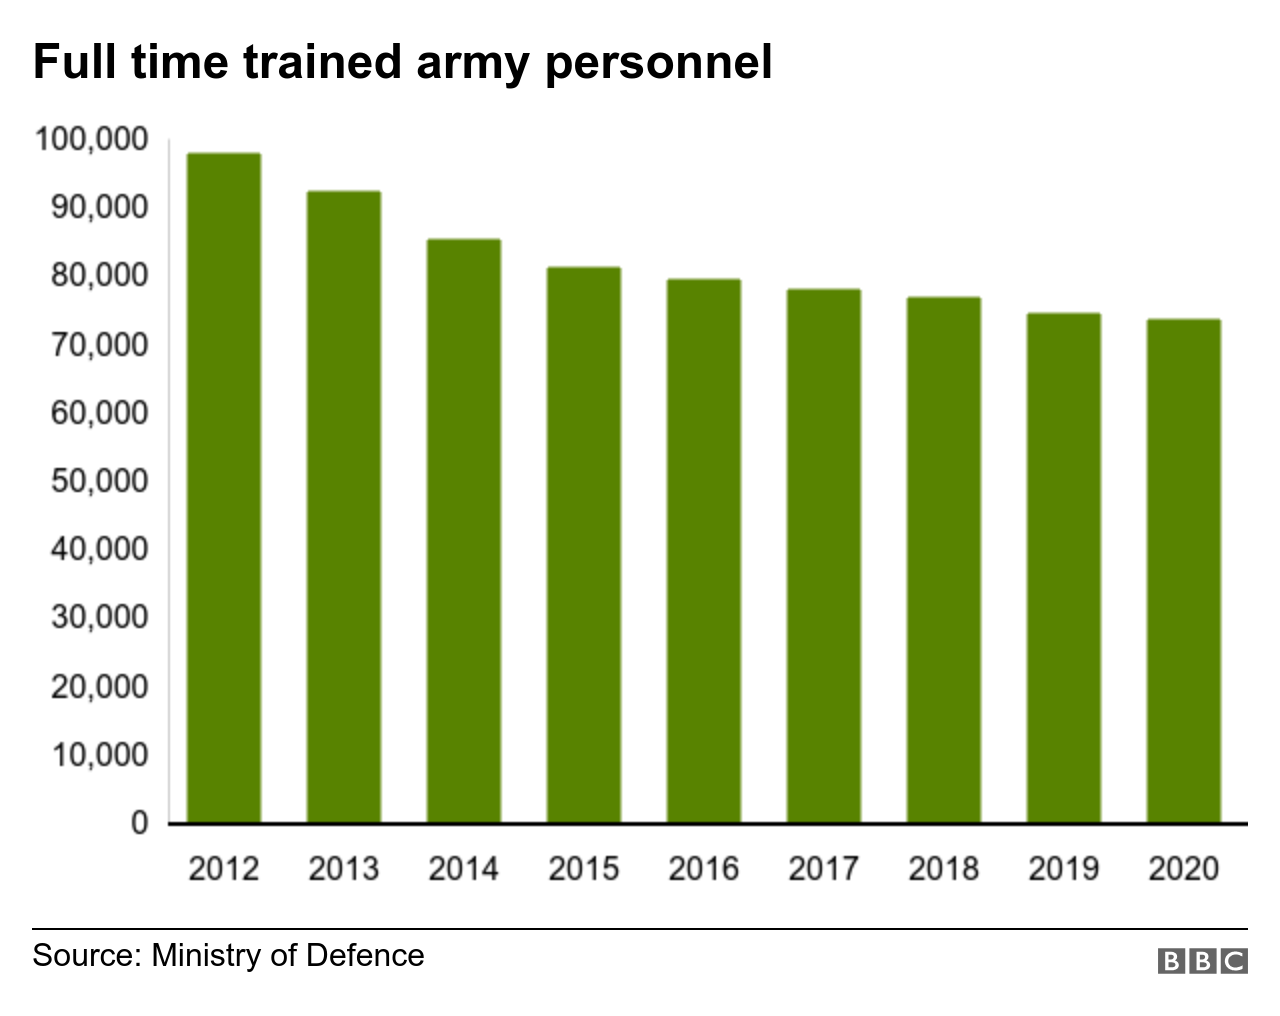 Full-time army personnel has fallen steadily over the past decade